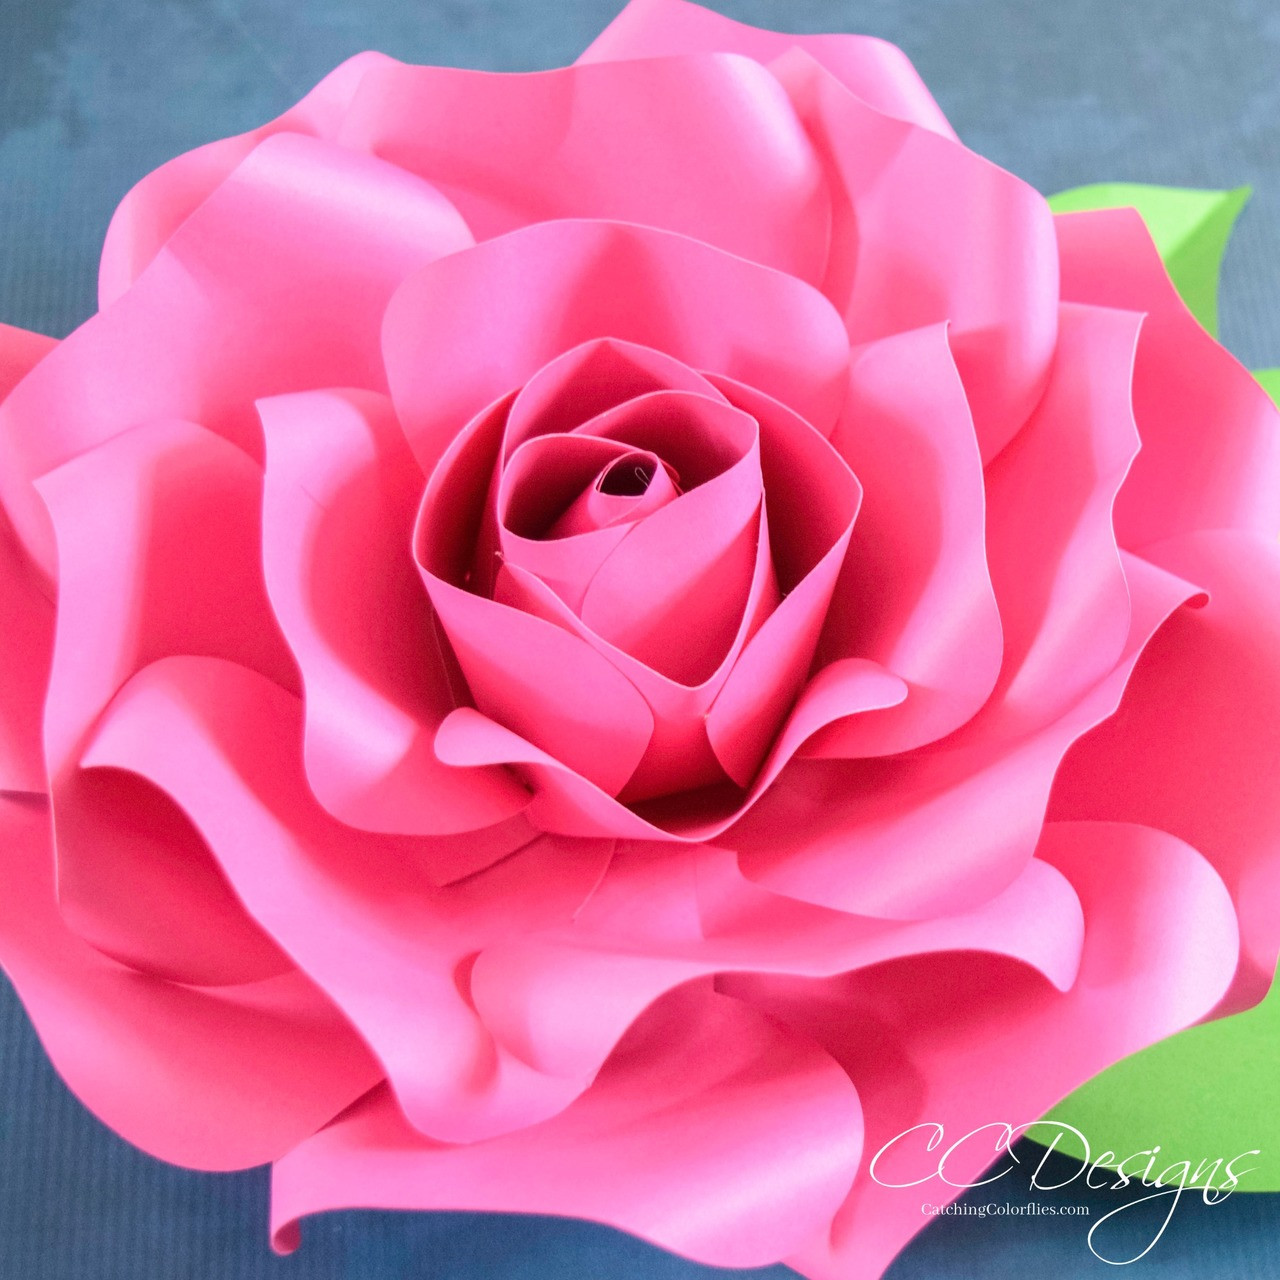 Alora Garden Giant Paper Rose Template & Tutorial - Catching Colorflies